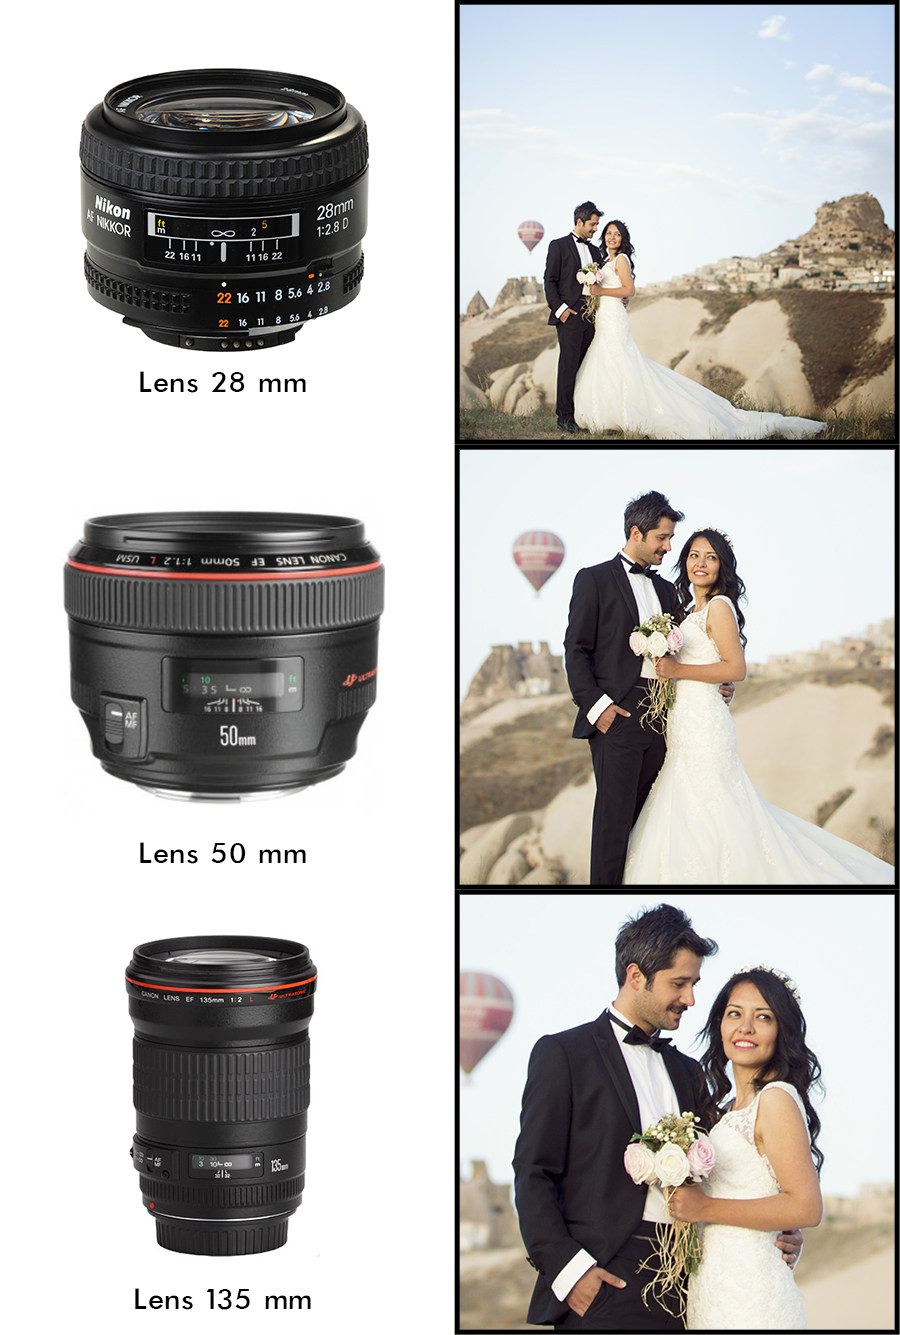 lenses-for-wedding-photography